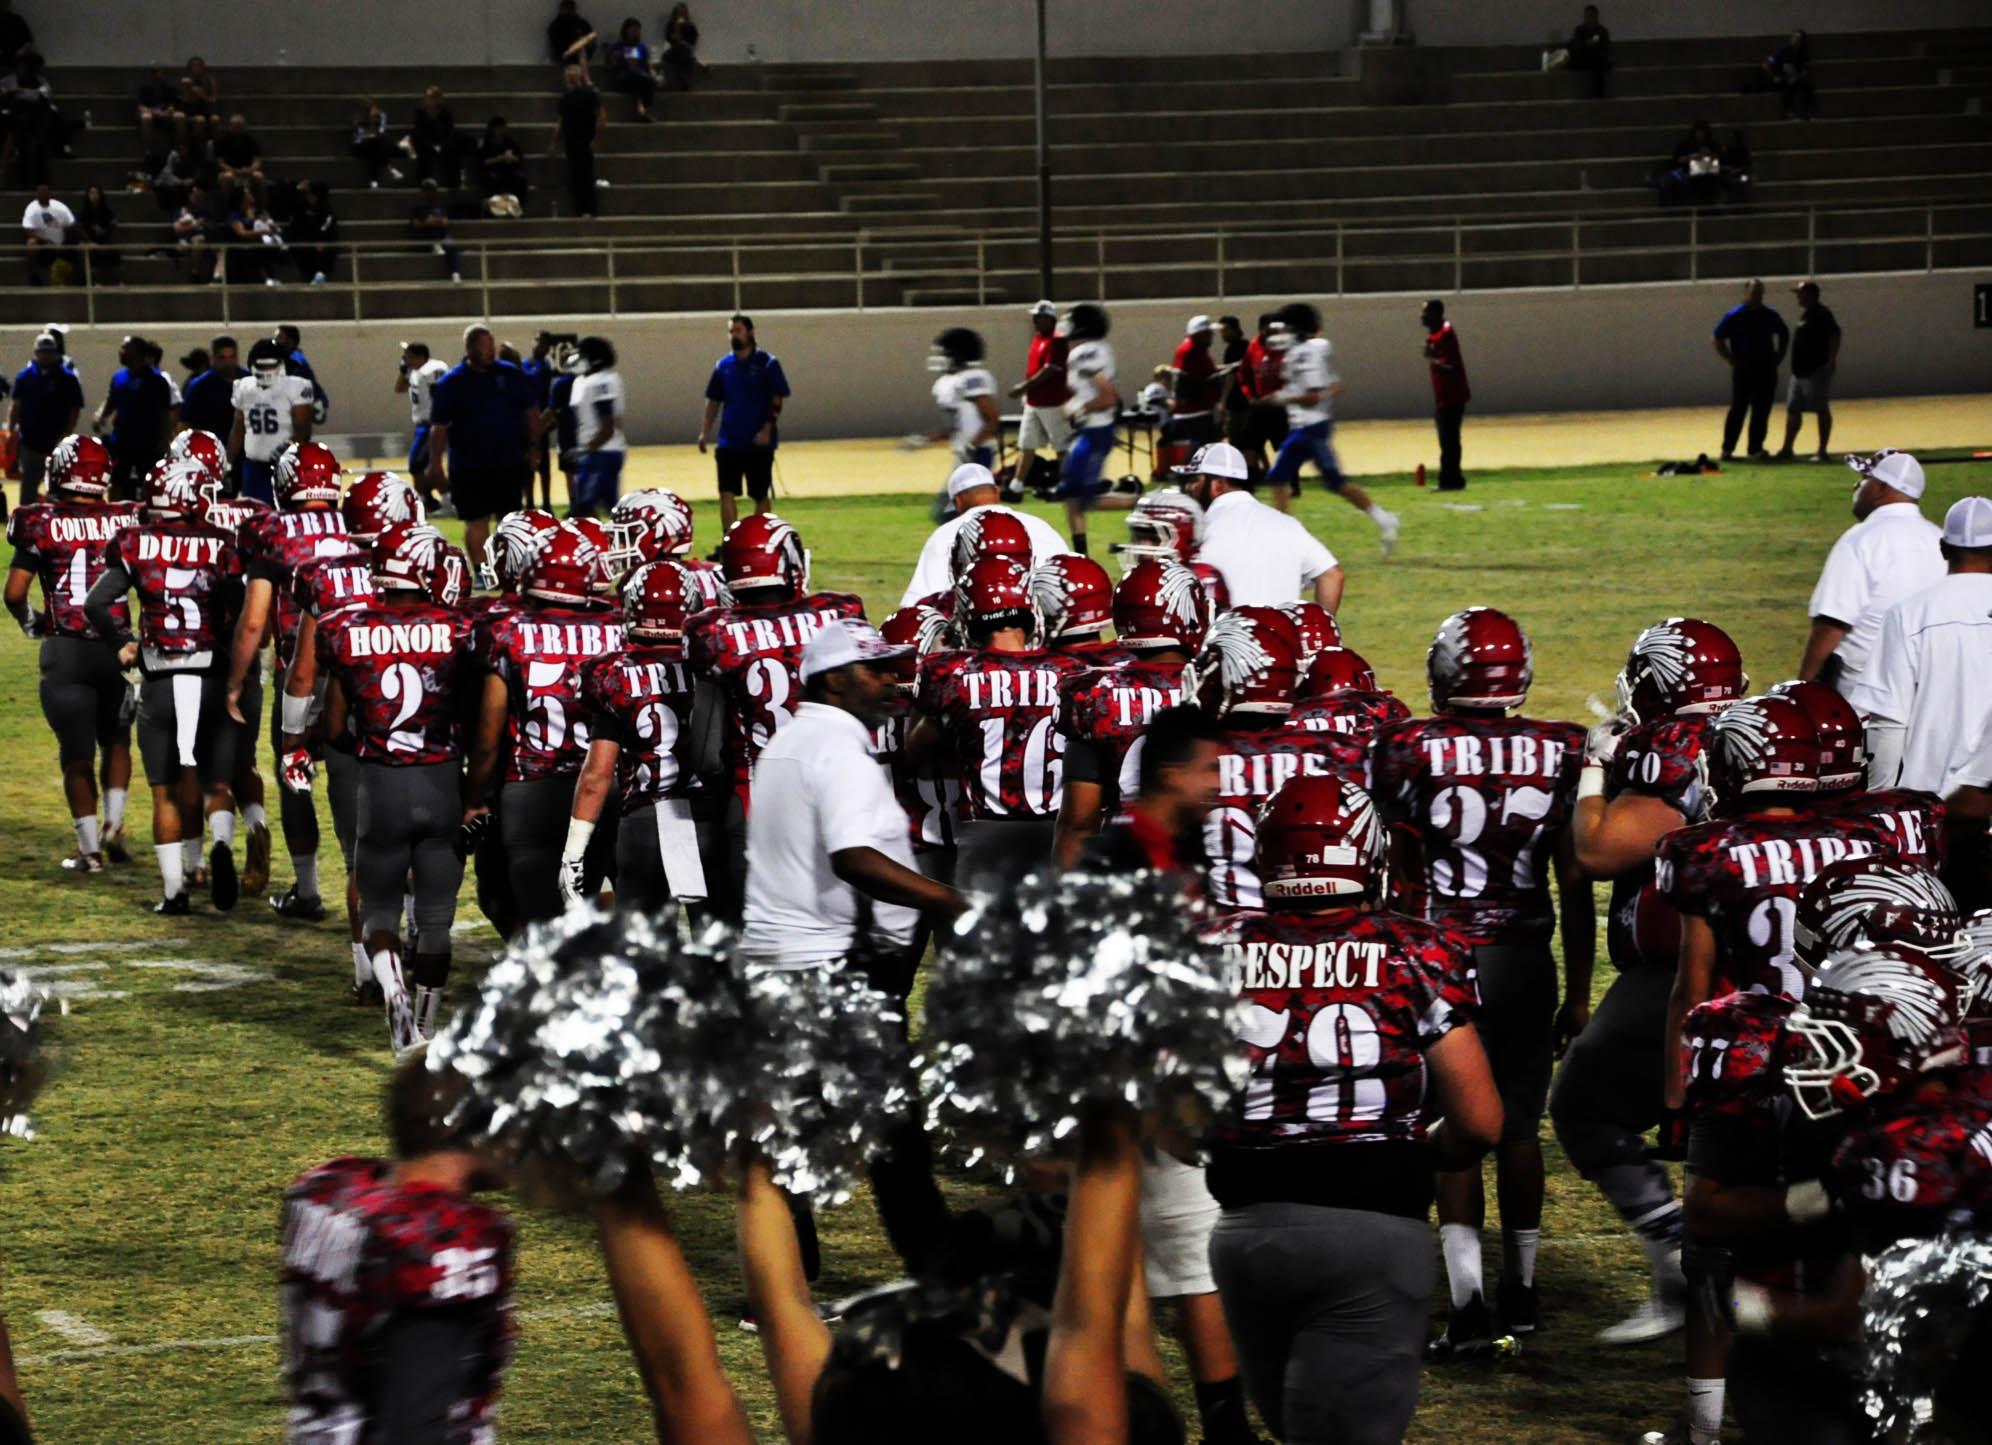 Football+Players+line+up+to+shake+hands+with+other+team+to+show+respect.Photo+By+Madison+Velez